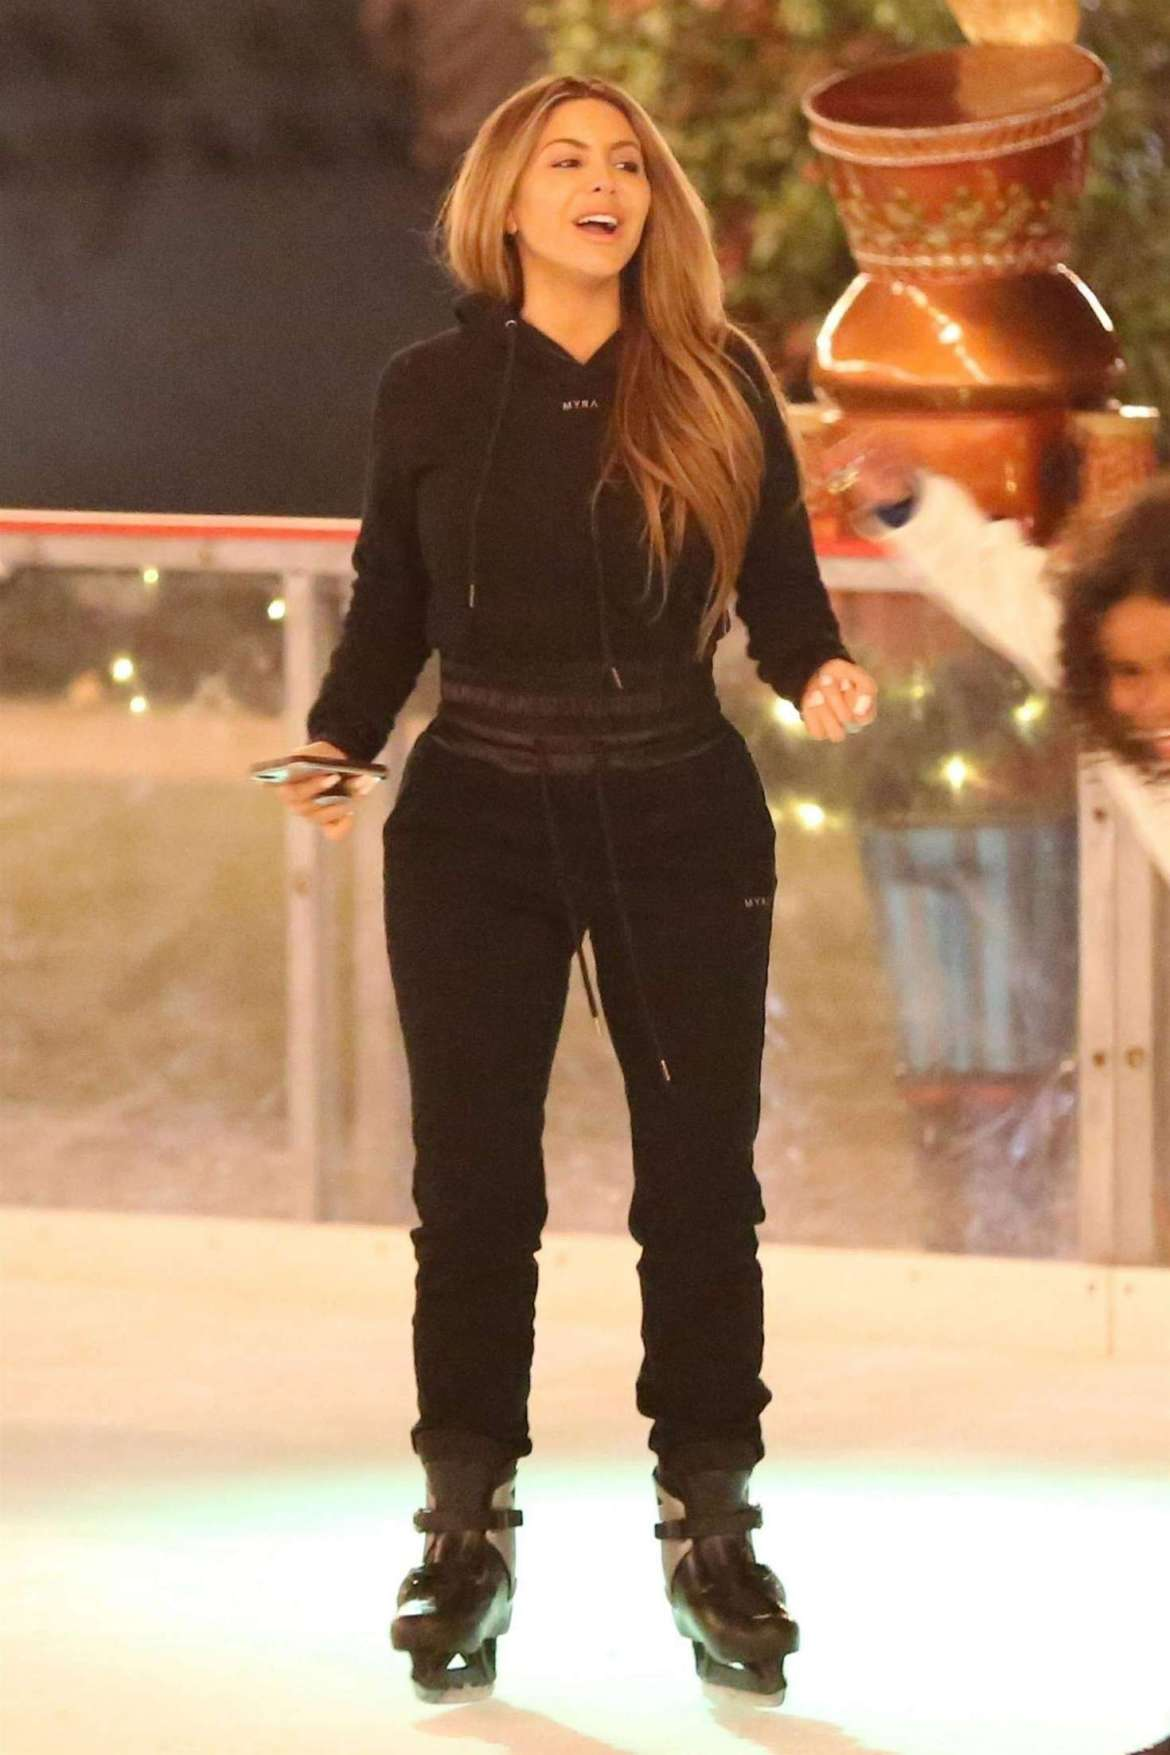 Kourtney Kardashian and Larsa Pippen – Ice skating in Los Angeles